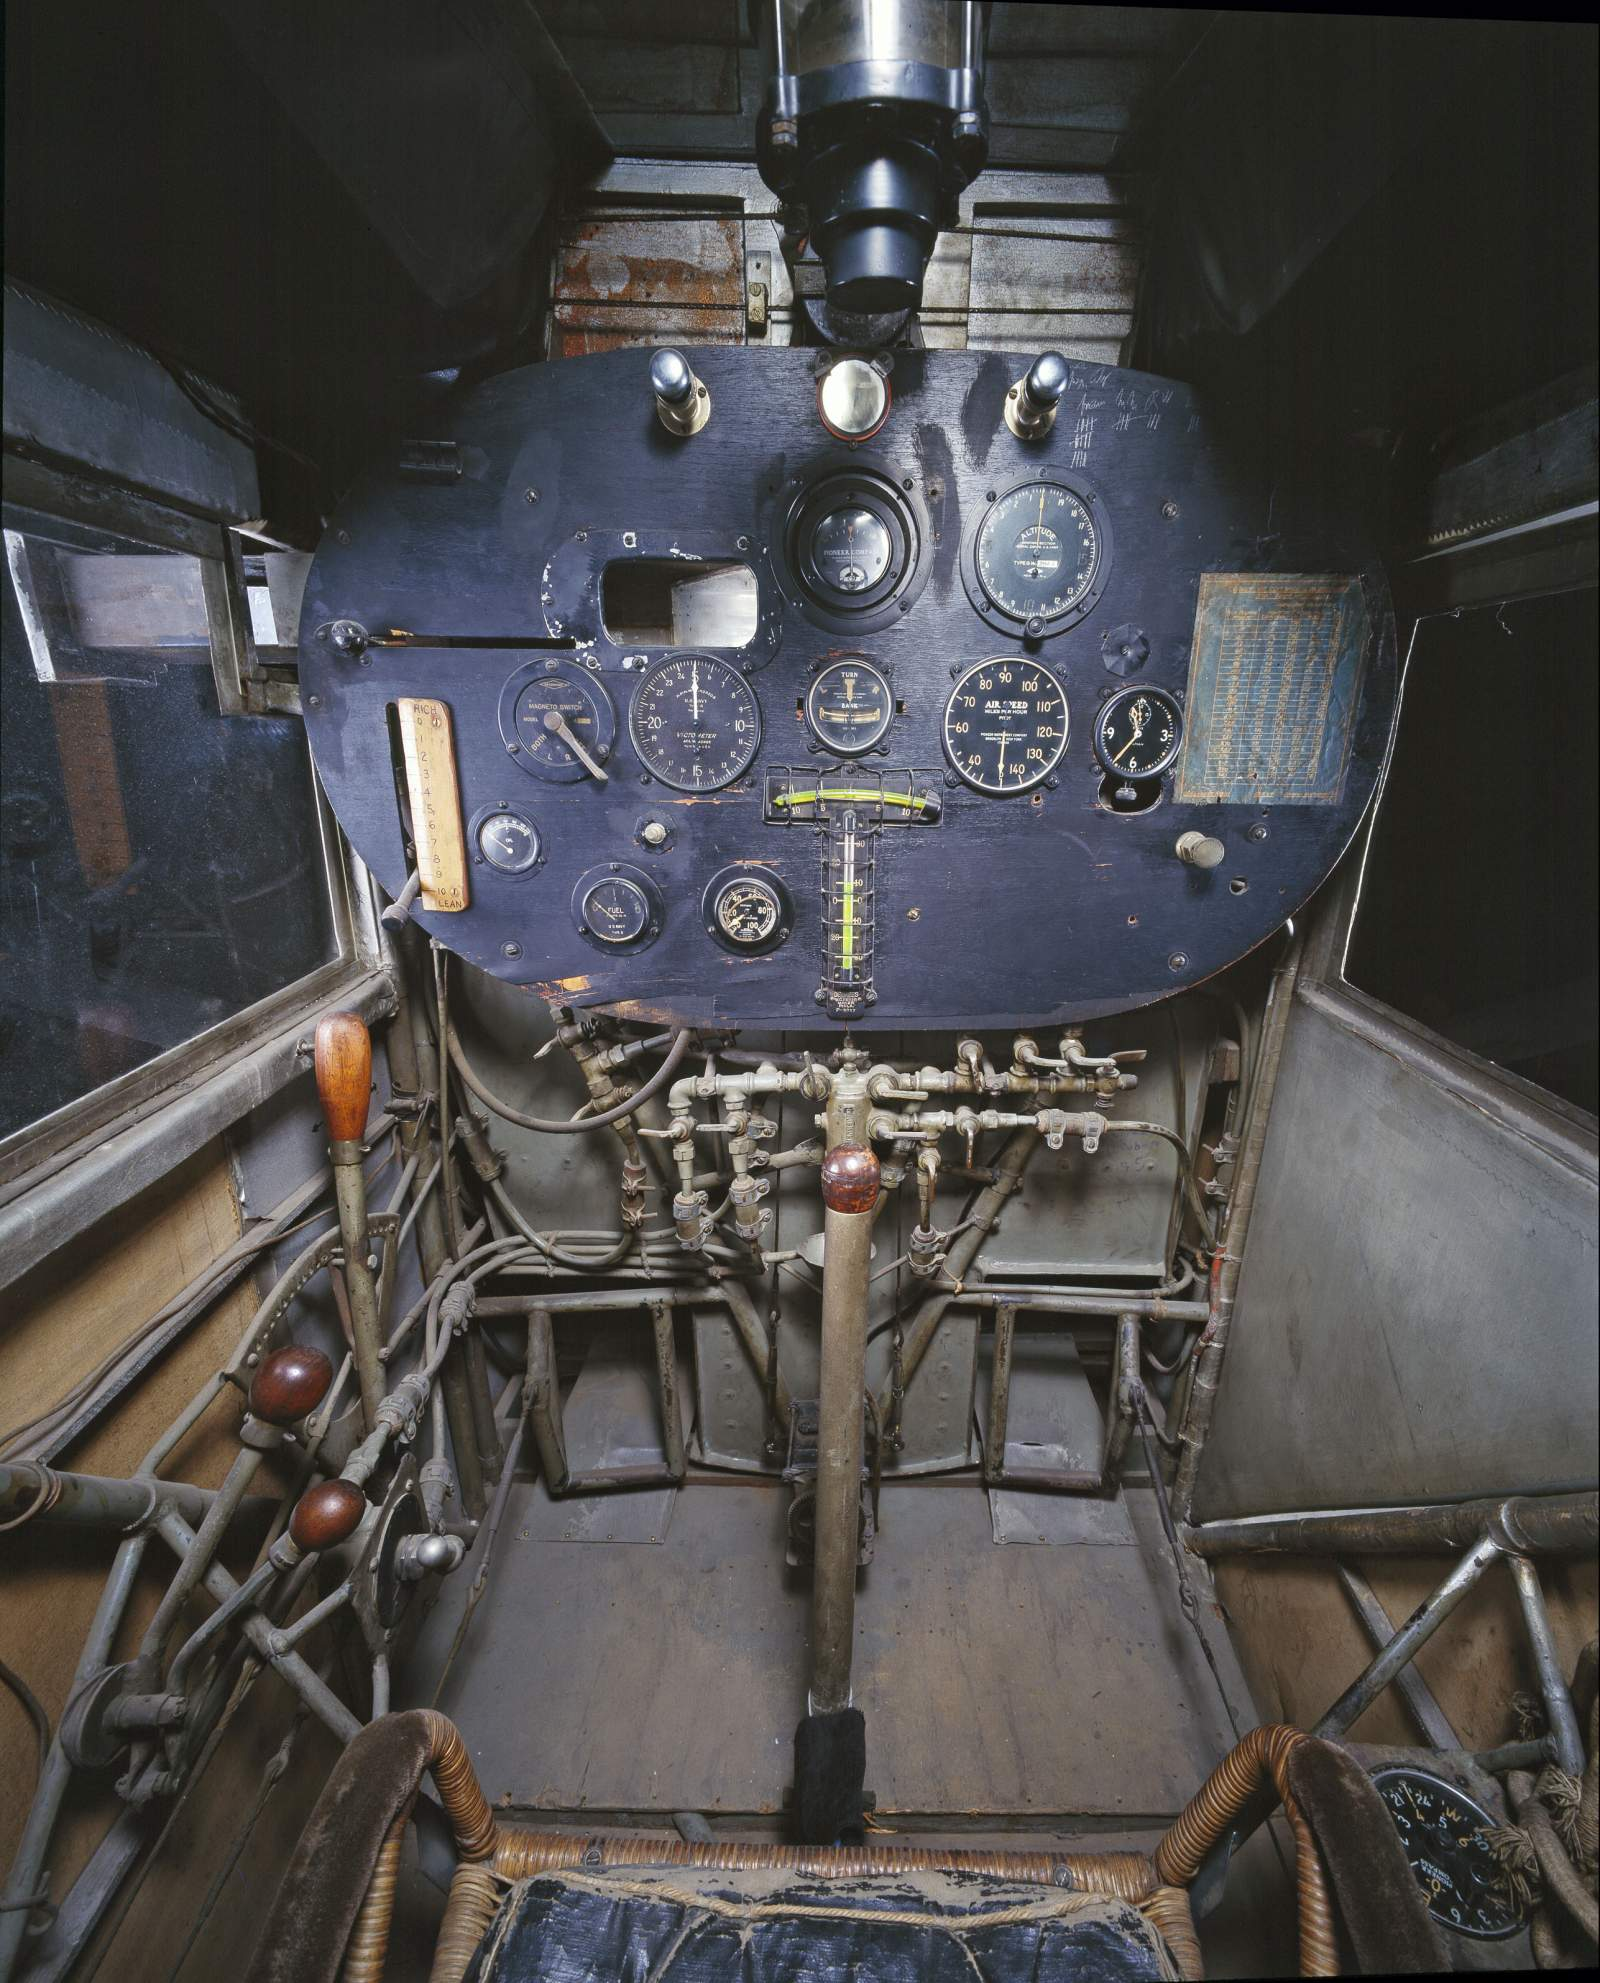 Inside the cockpit of the Spirit of St. Louis